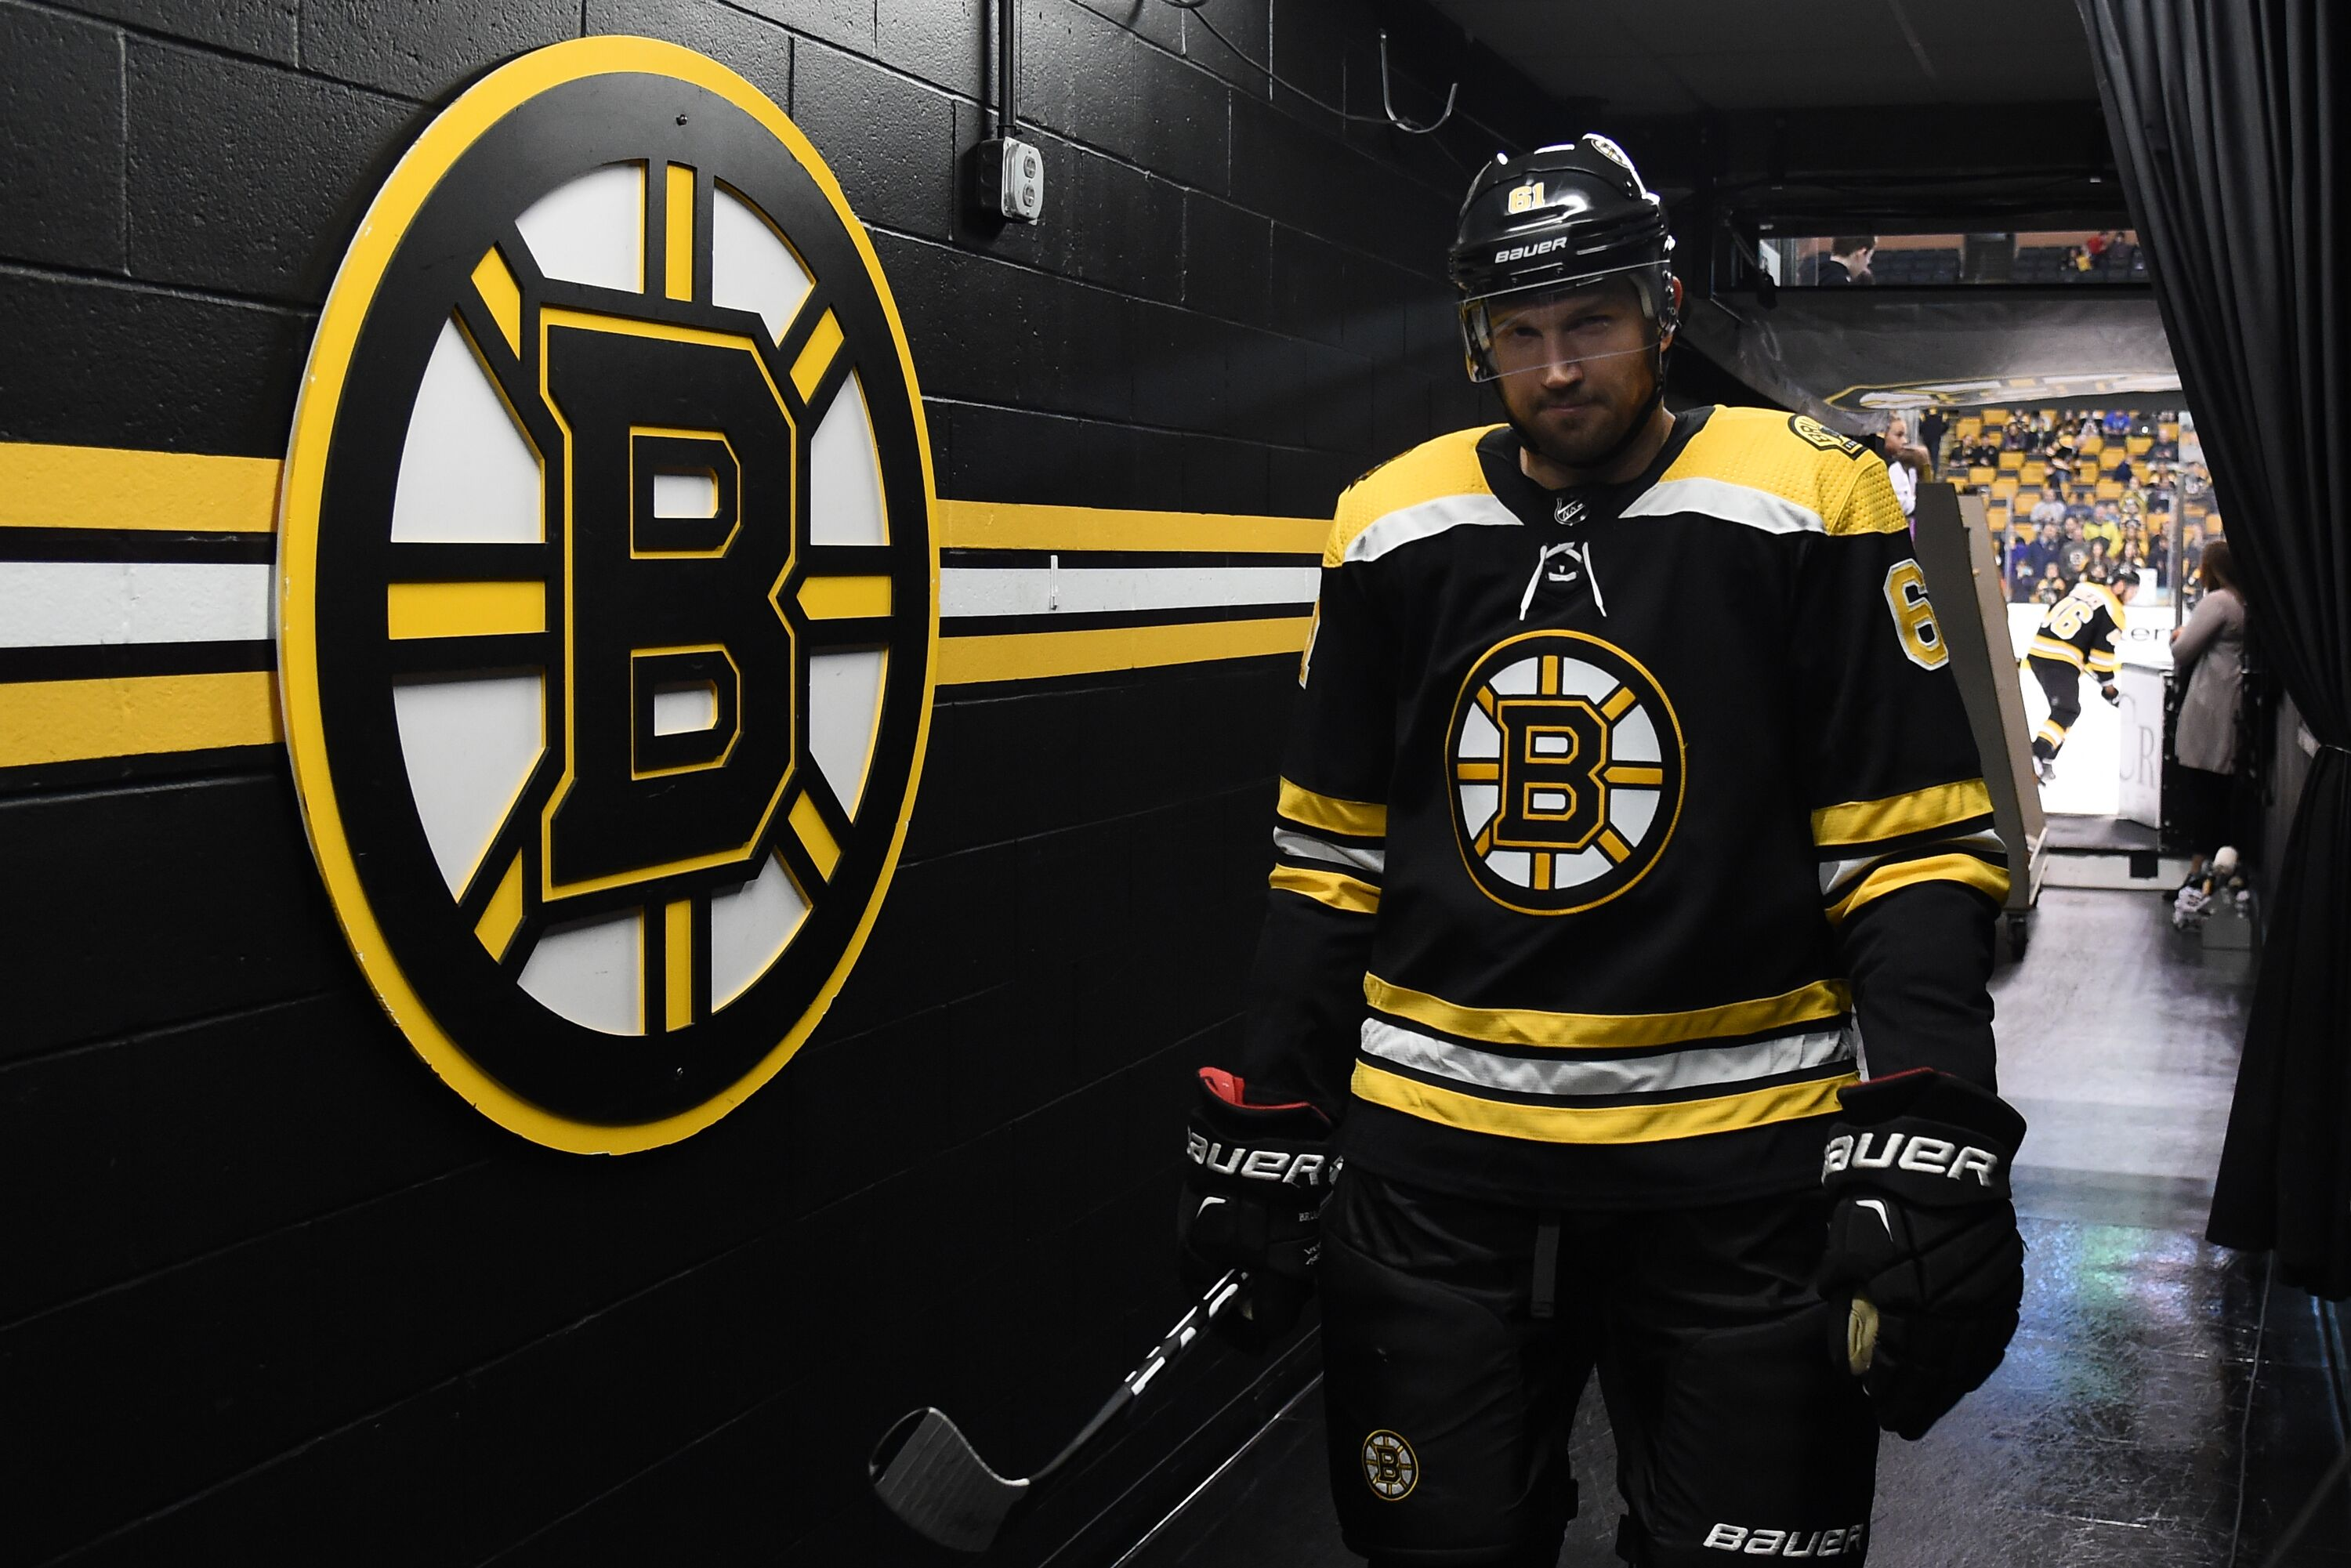 Rick Nash has wild home debut for Bruins (Video)